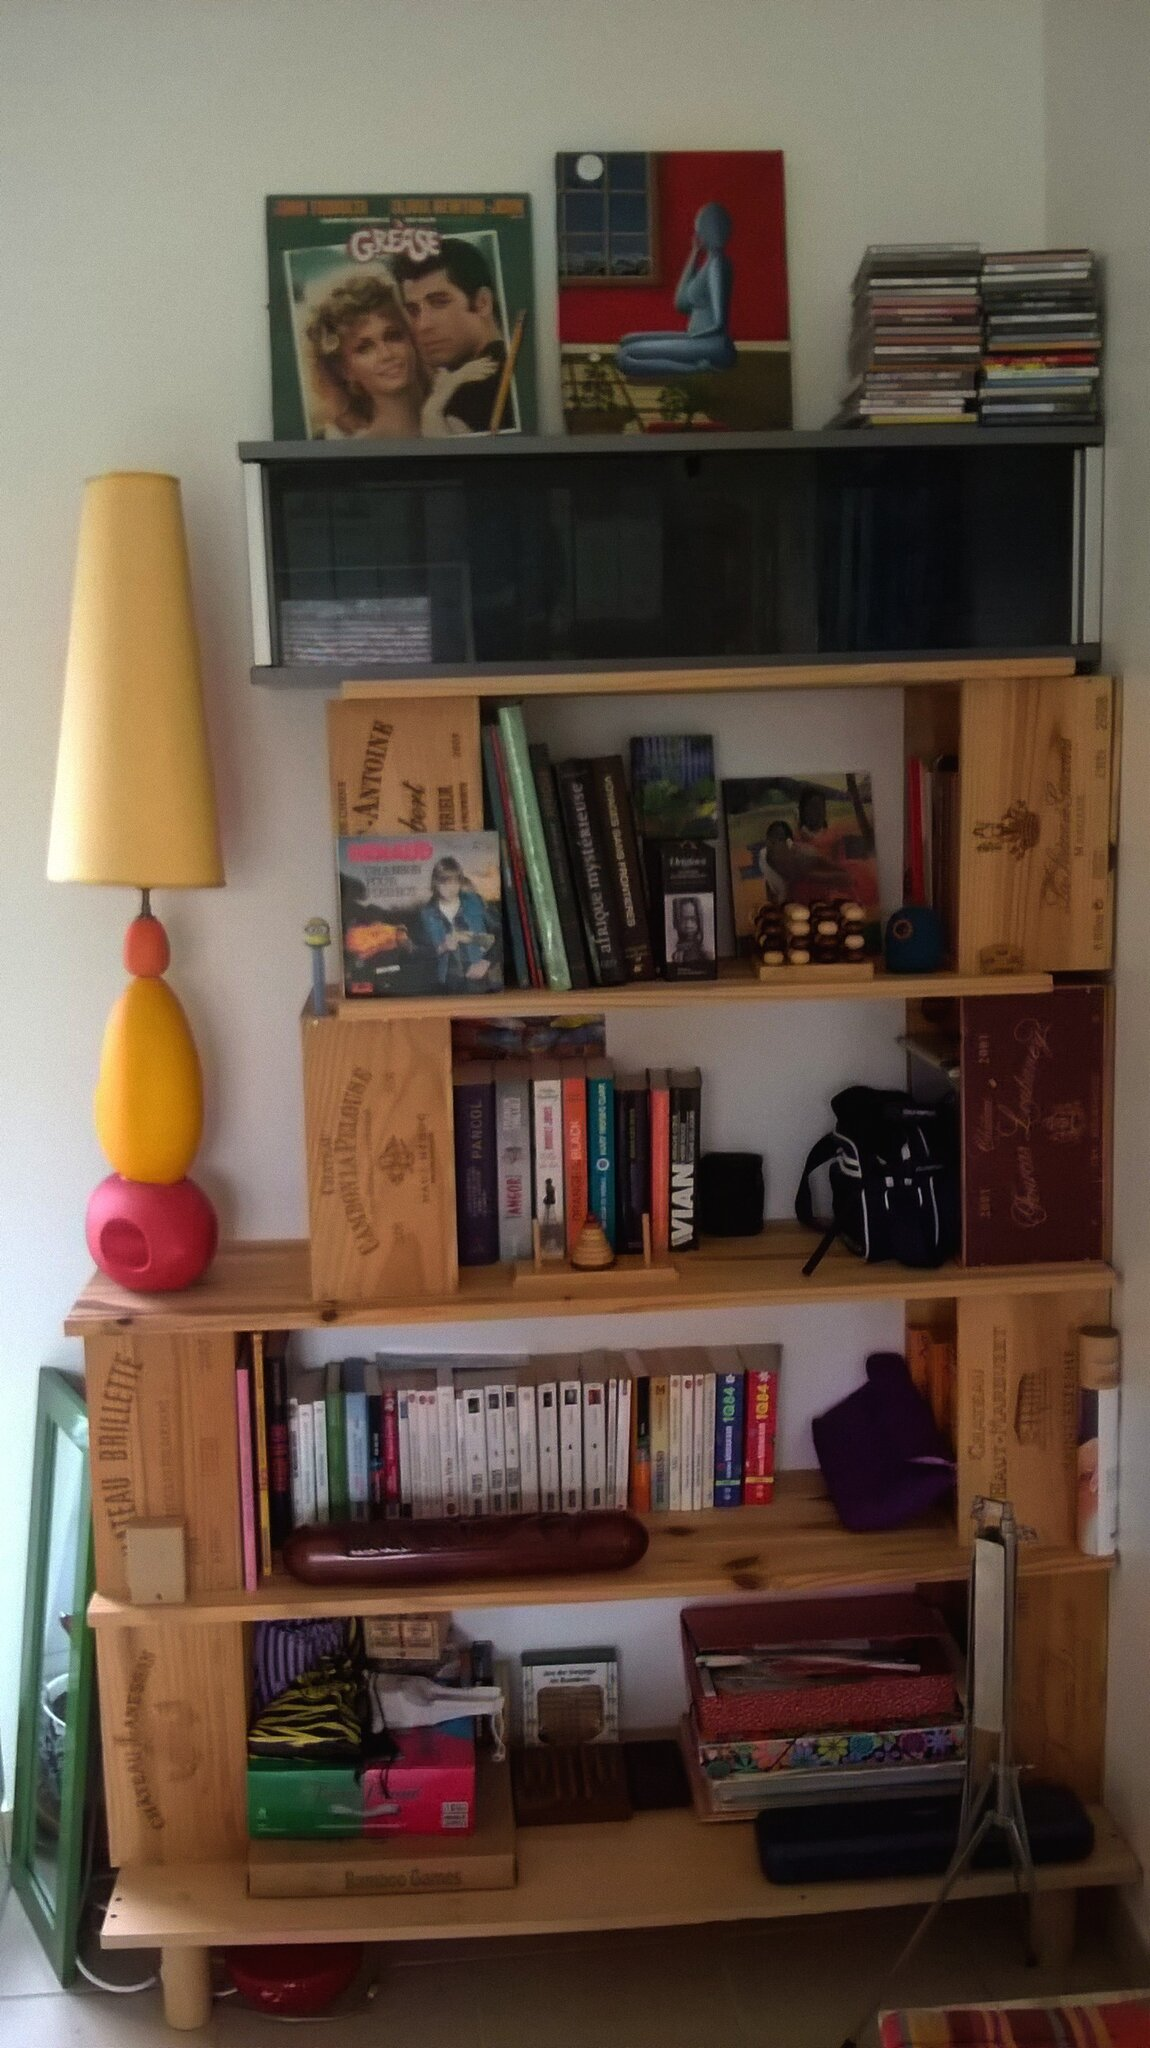 diy biblioth que en planches de bois et caisses vin l 39 atelier de la malie. Black Bedroom Furniture Sets. Home Design Ideas